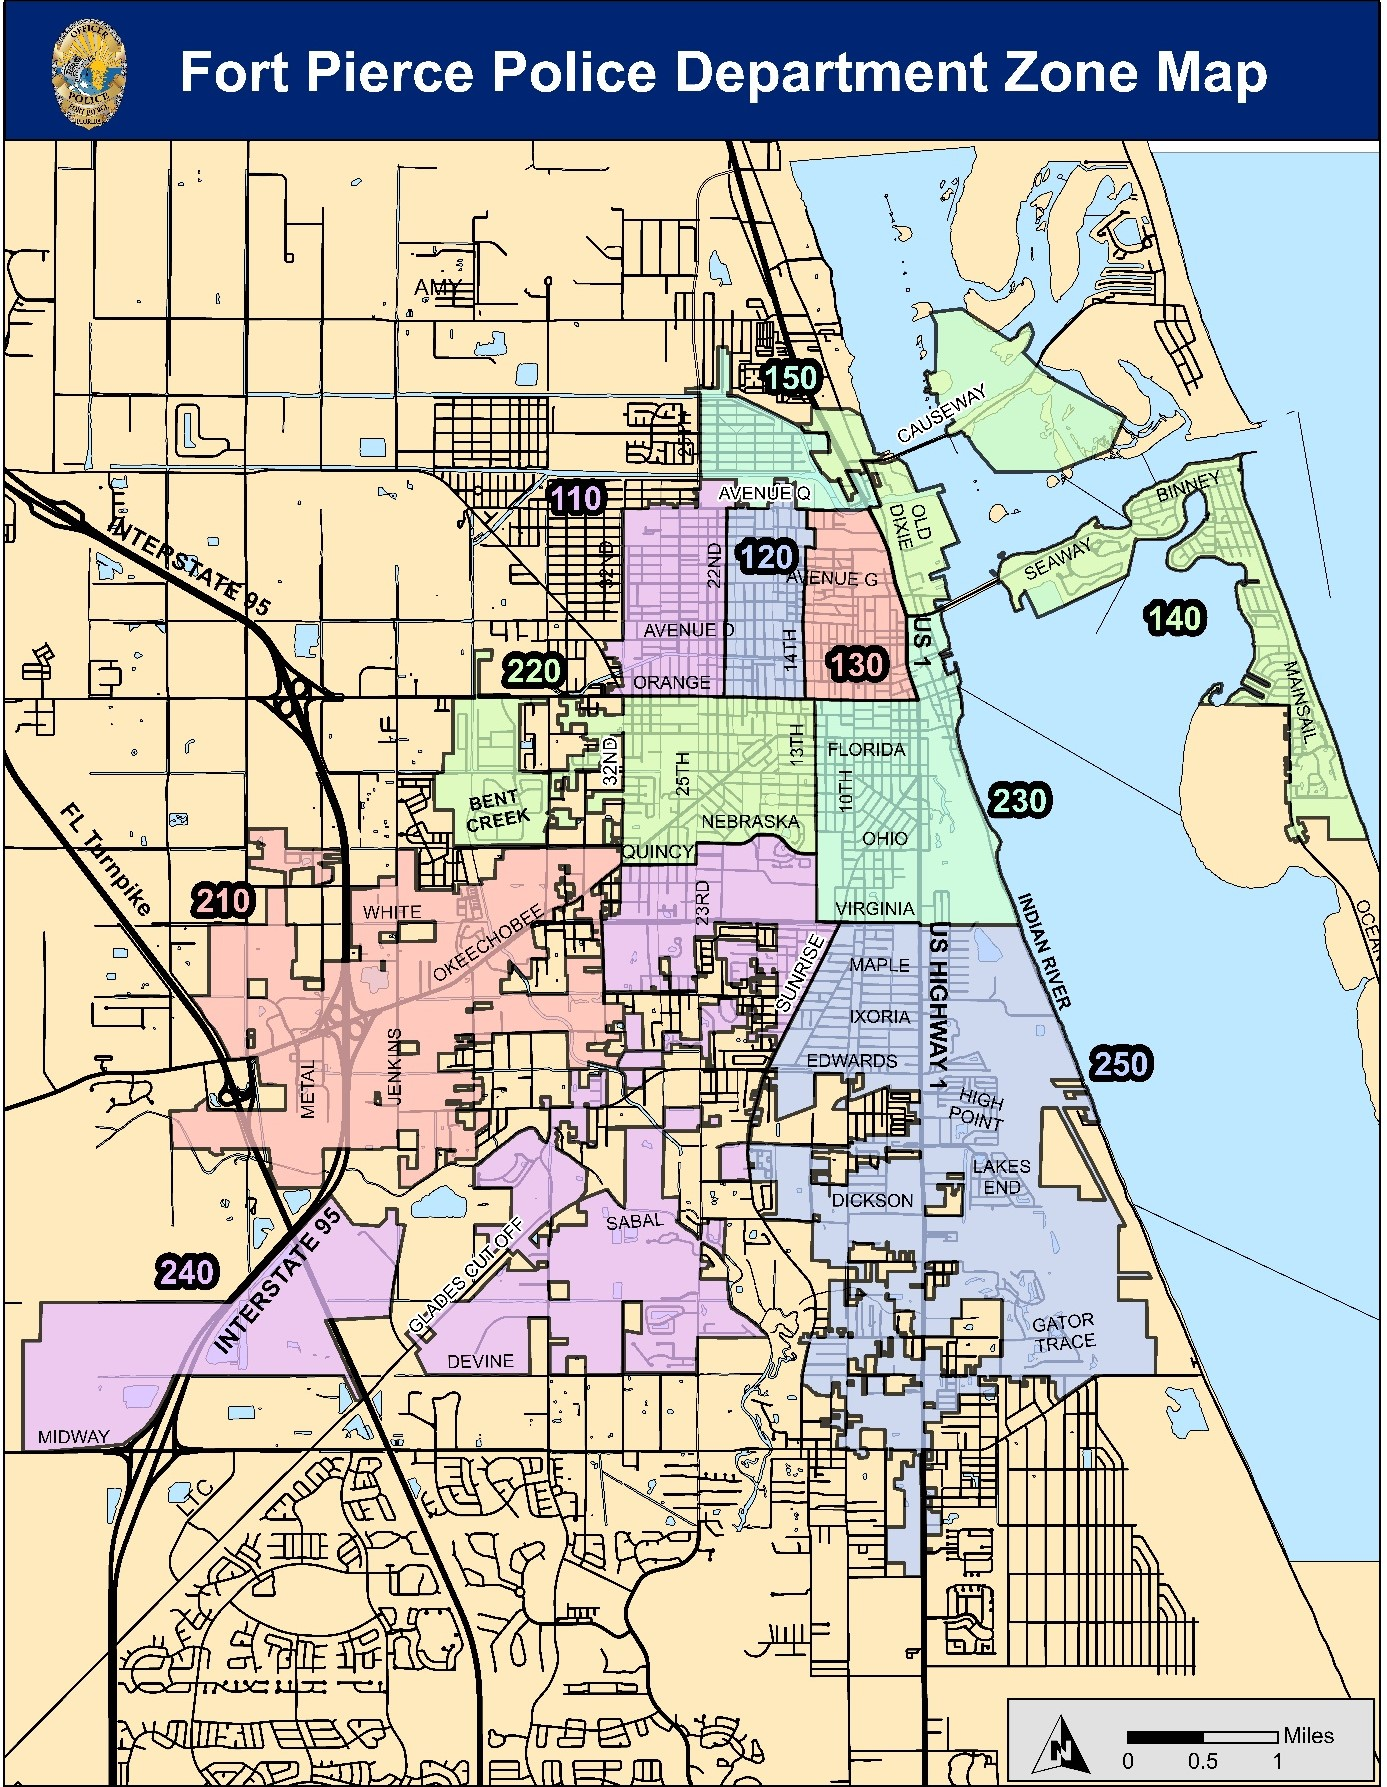 FPPD Zone Map